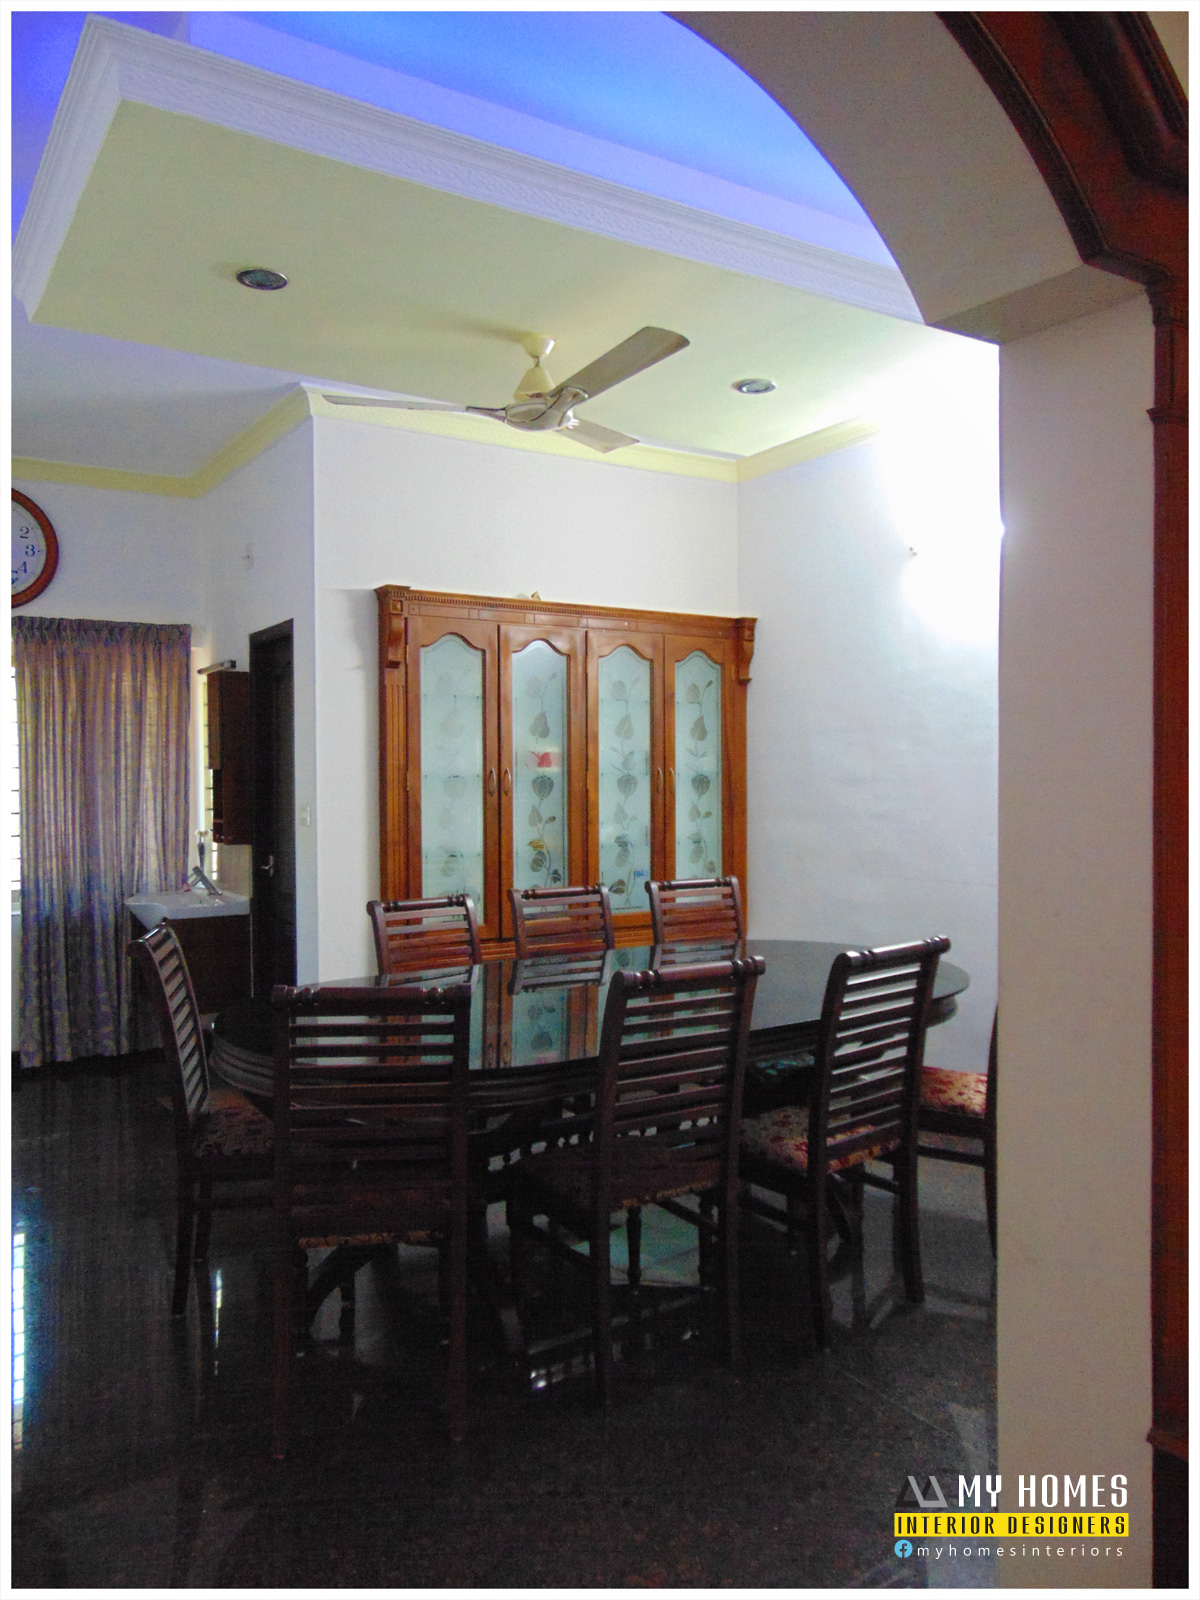 Wooden door style in kerala door designs photosm images for Hall to dining designs